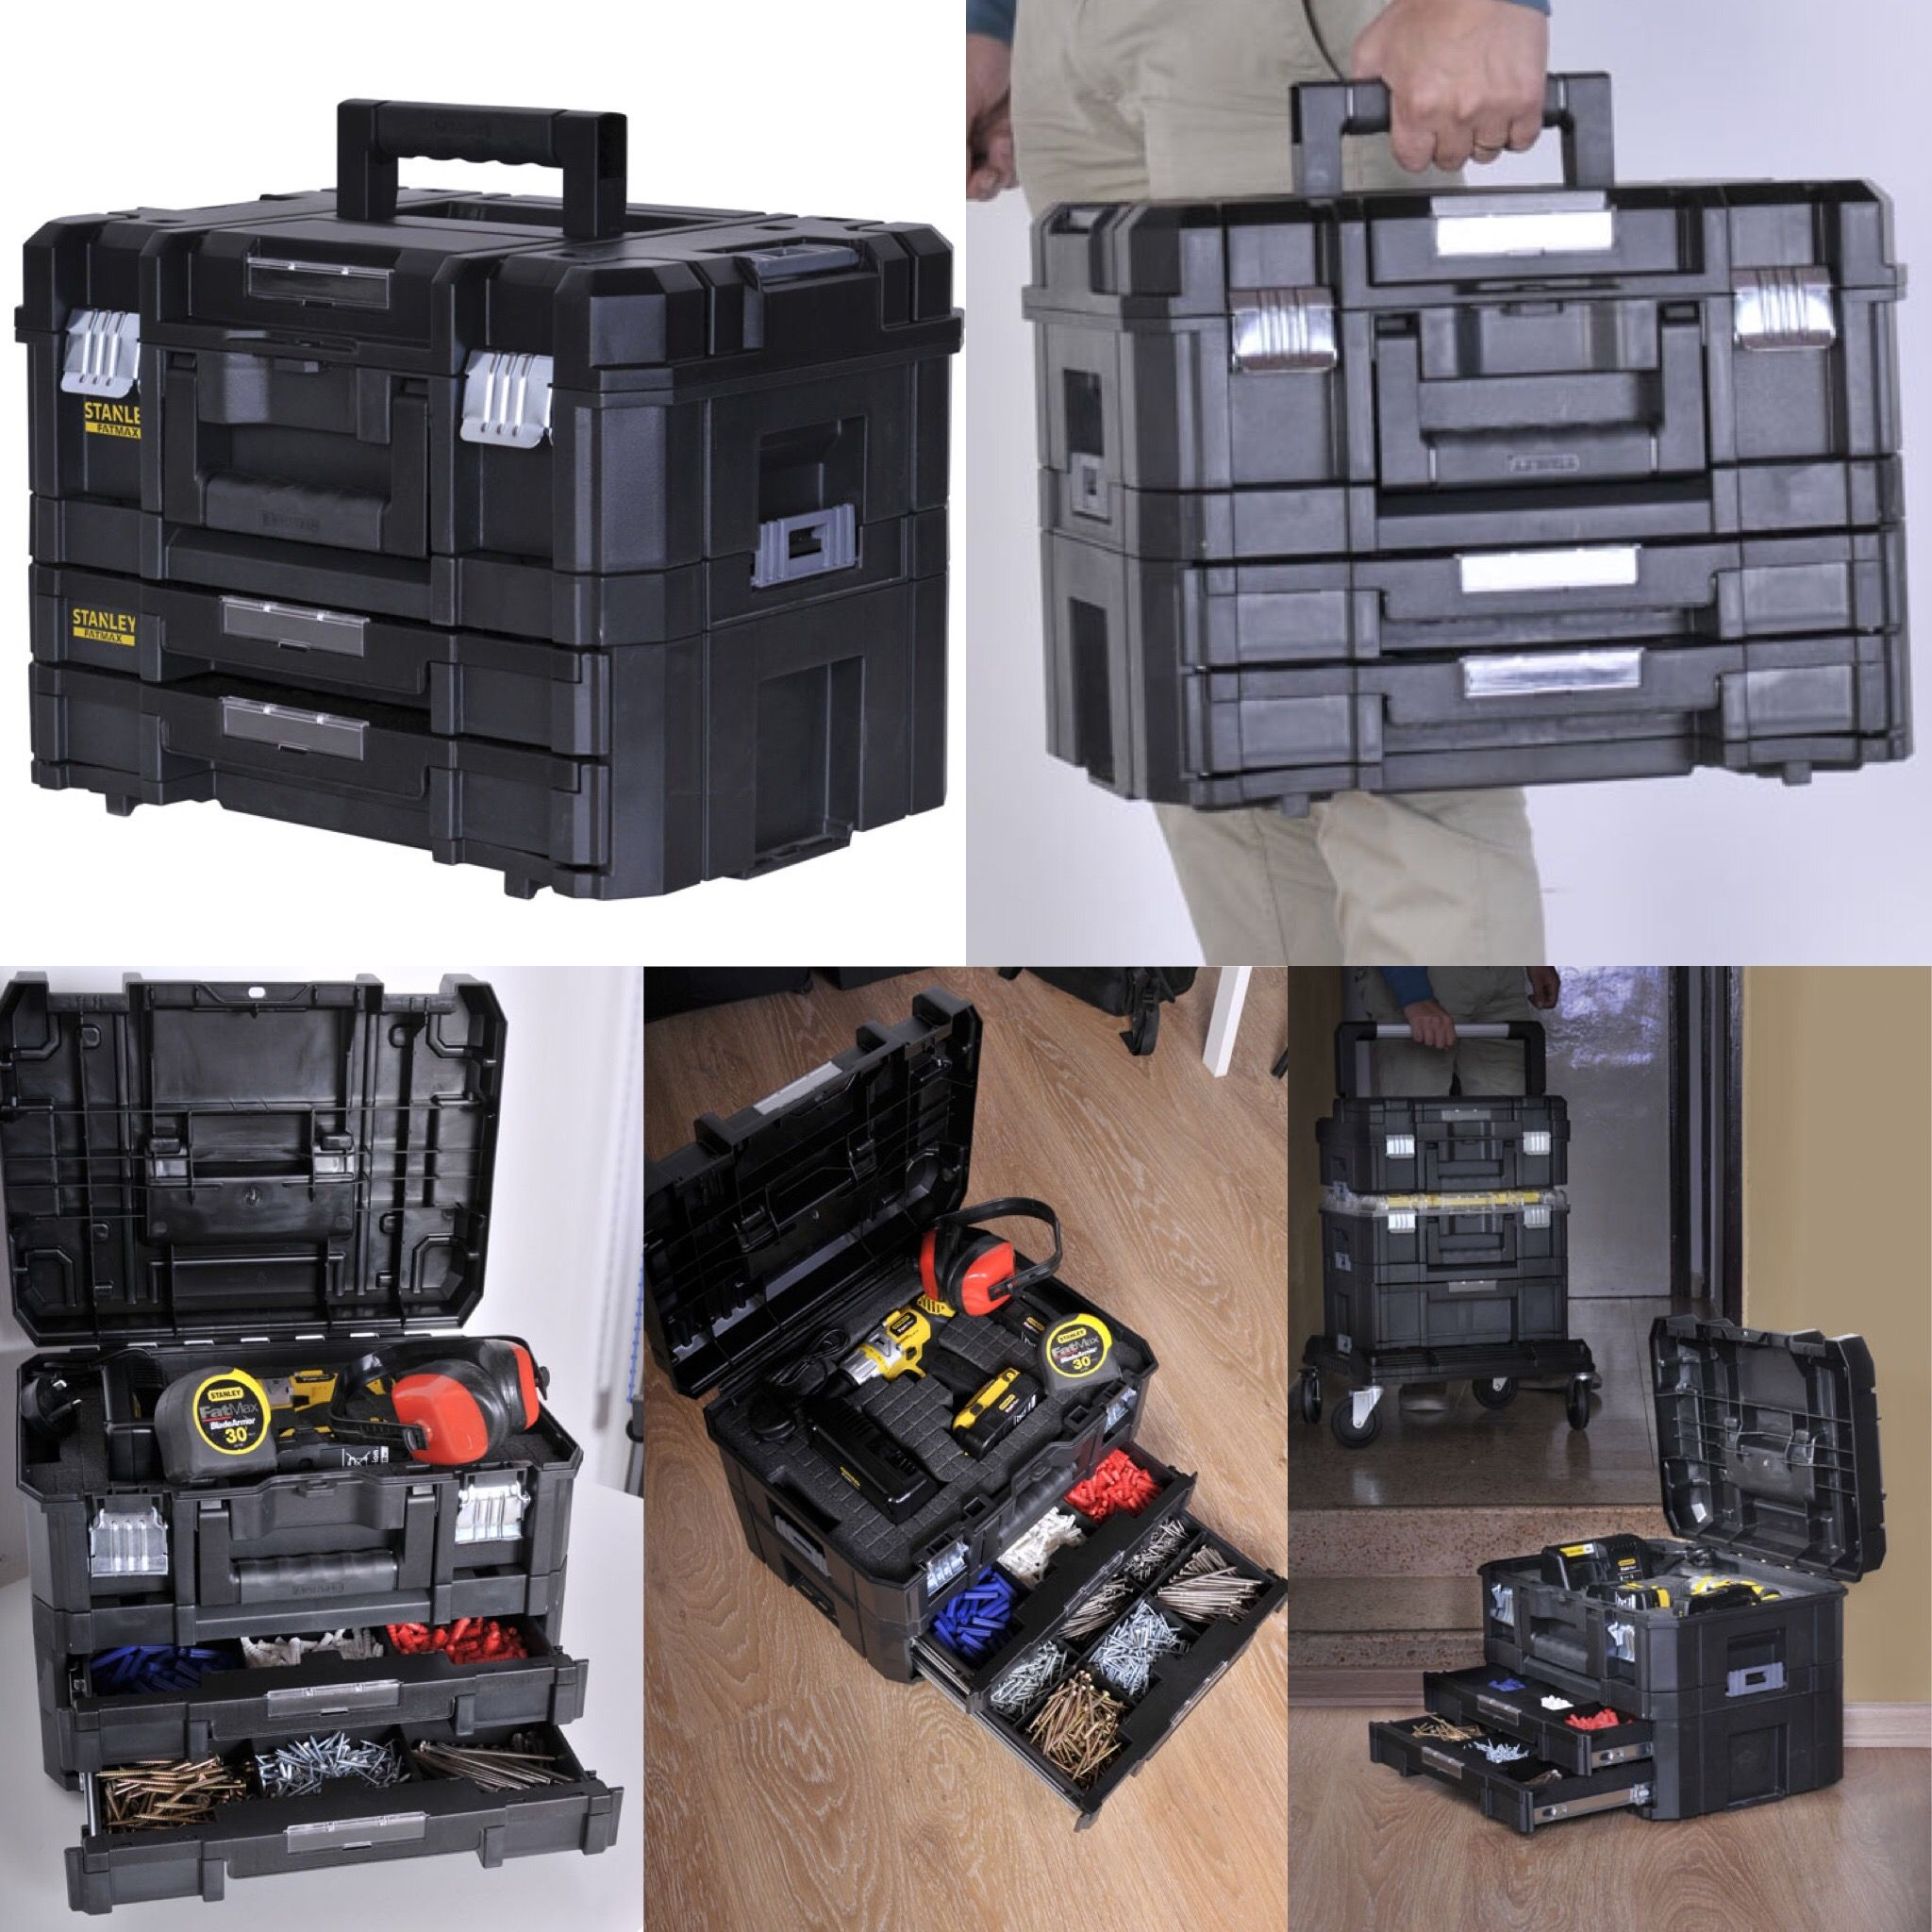 Pin By Anas Belaid On Tools Tool Storage Tool Box Organization